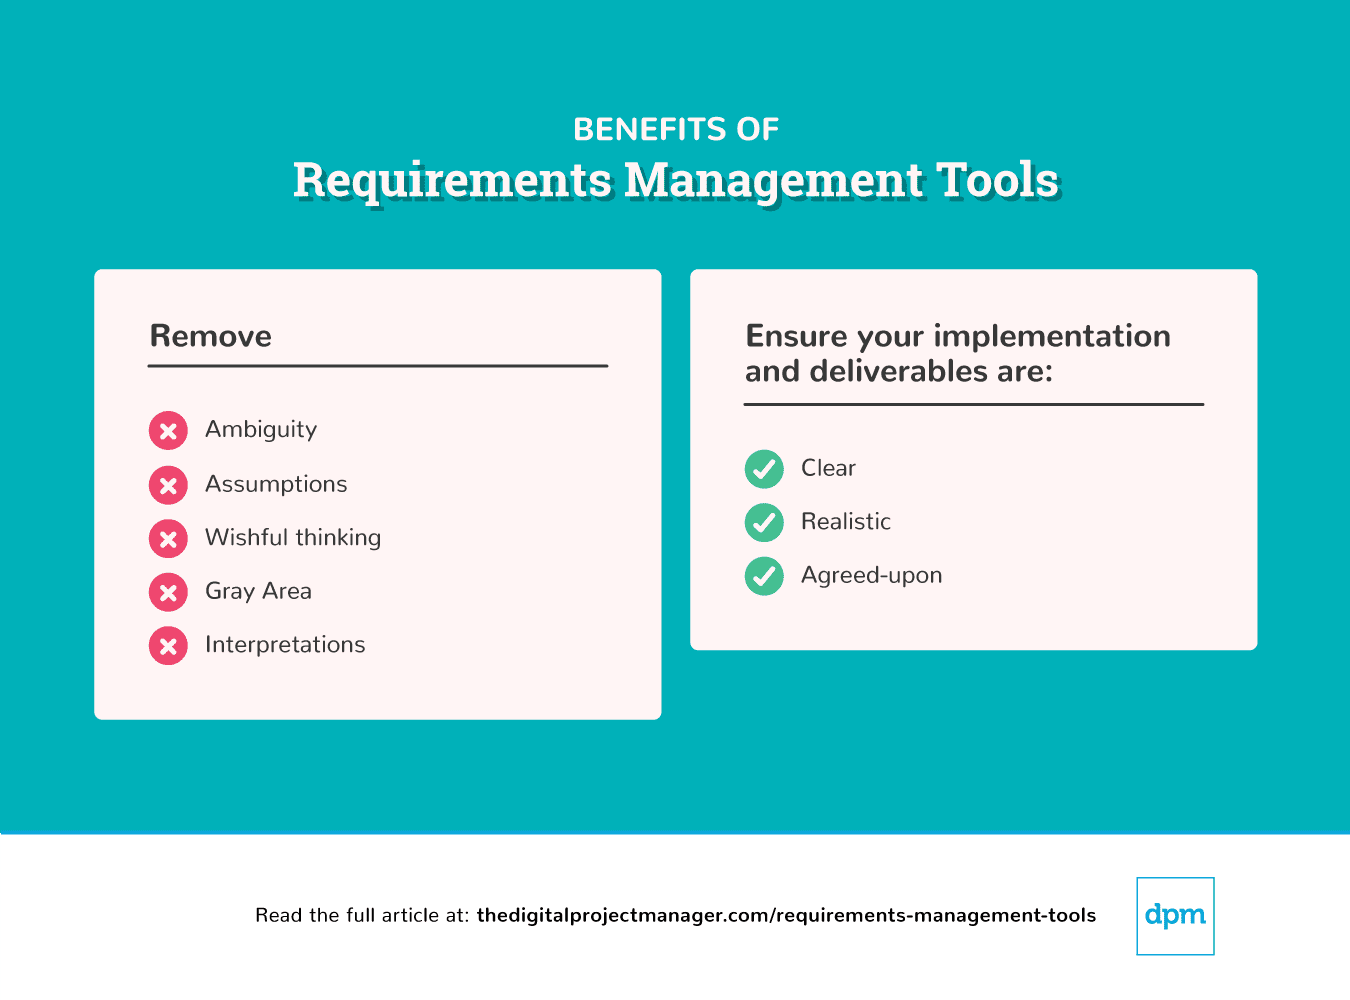 requirements-management-tools-infographic-2